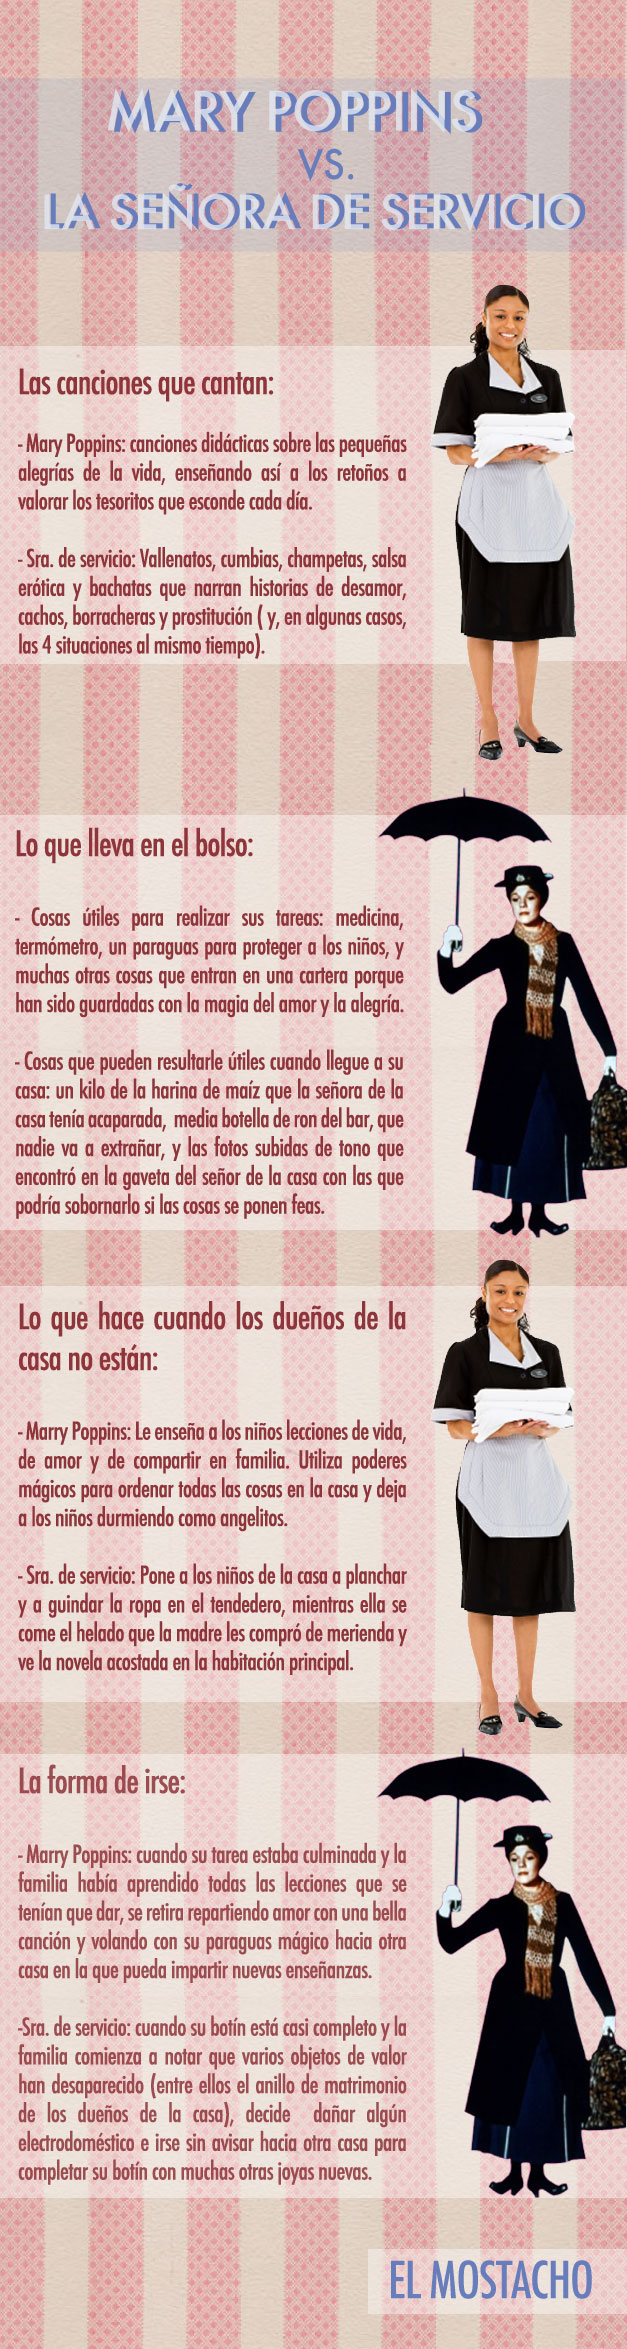 Mary Poppins Vs. La Señora de Servicio